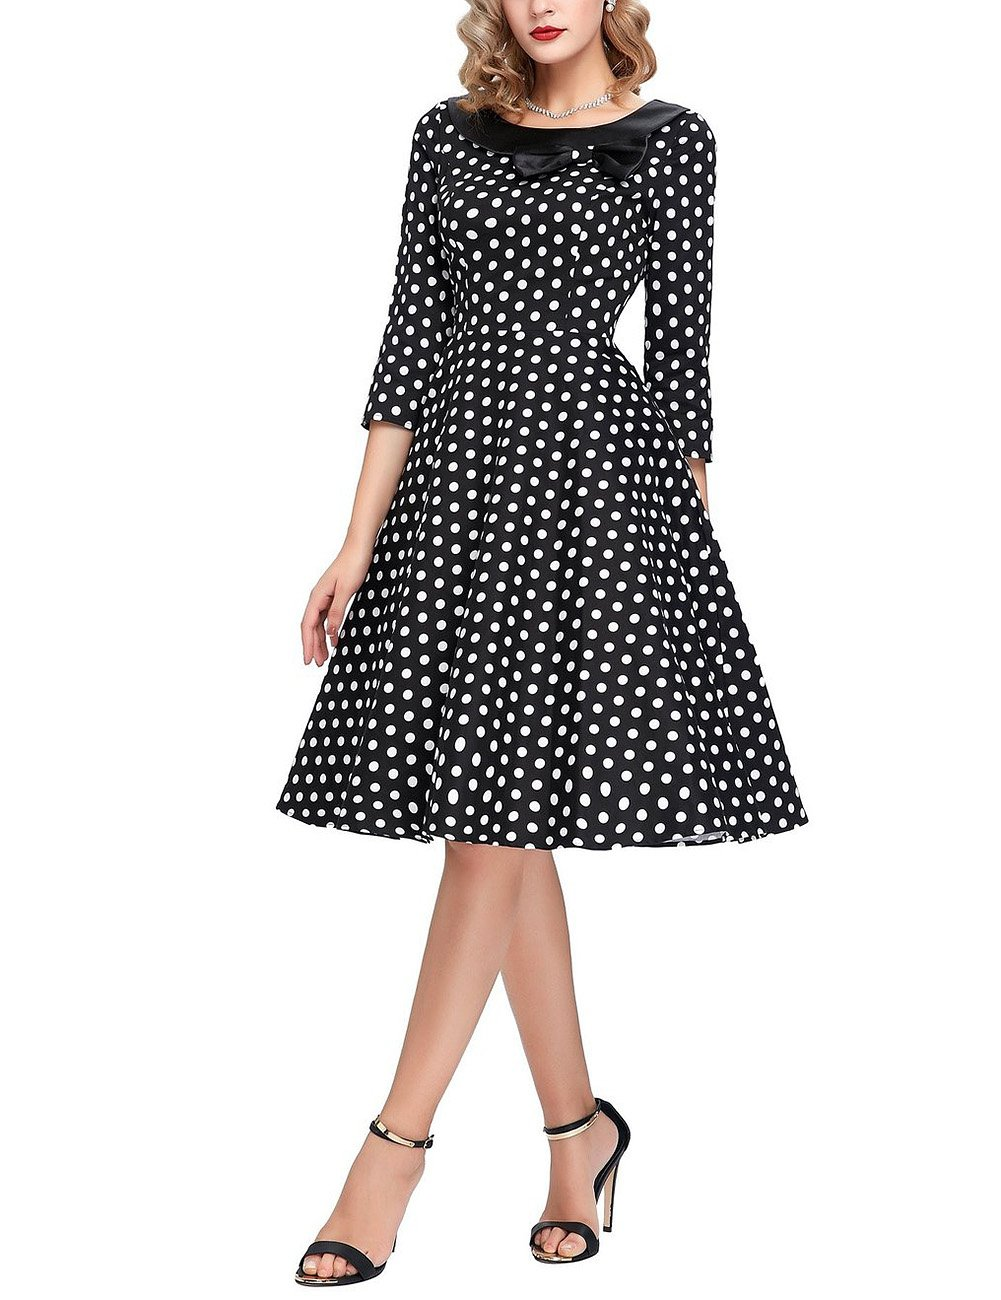 GlorySunshine Women's Vintage Swing Polka Dot Dress 5